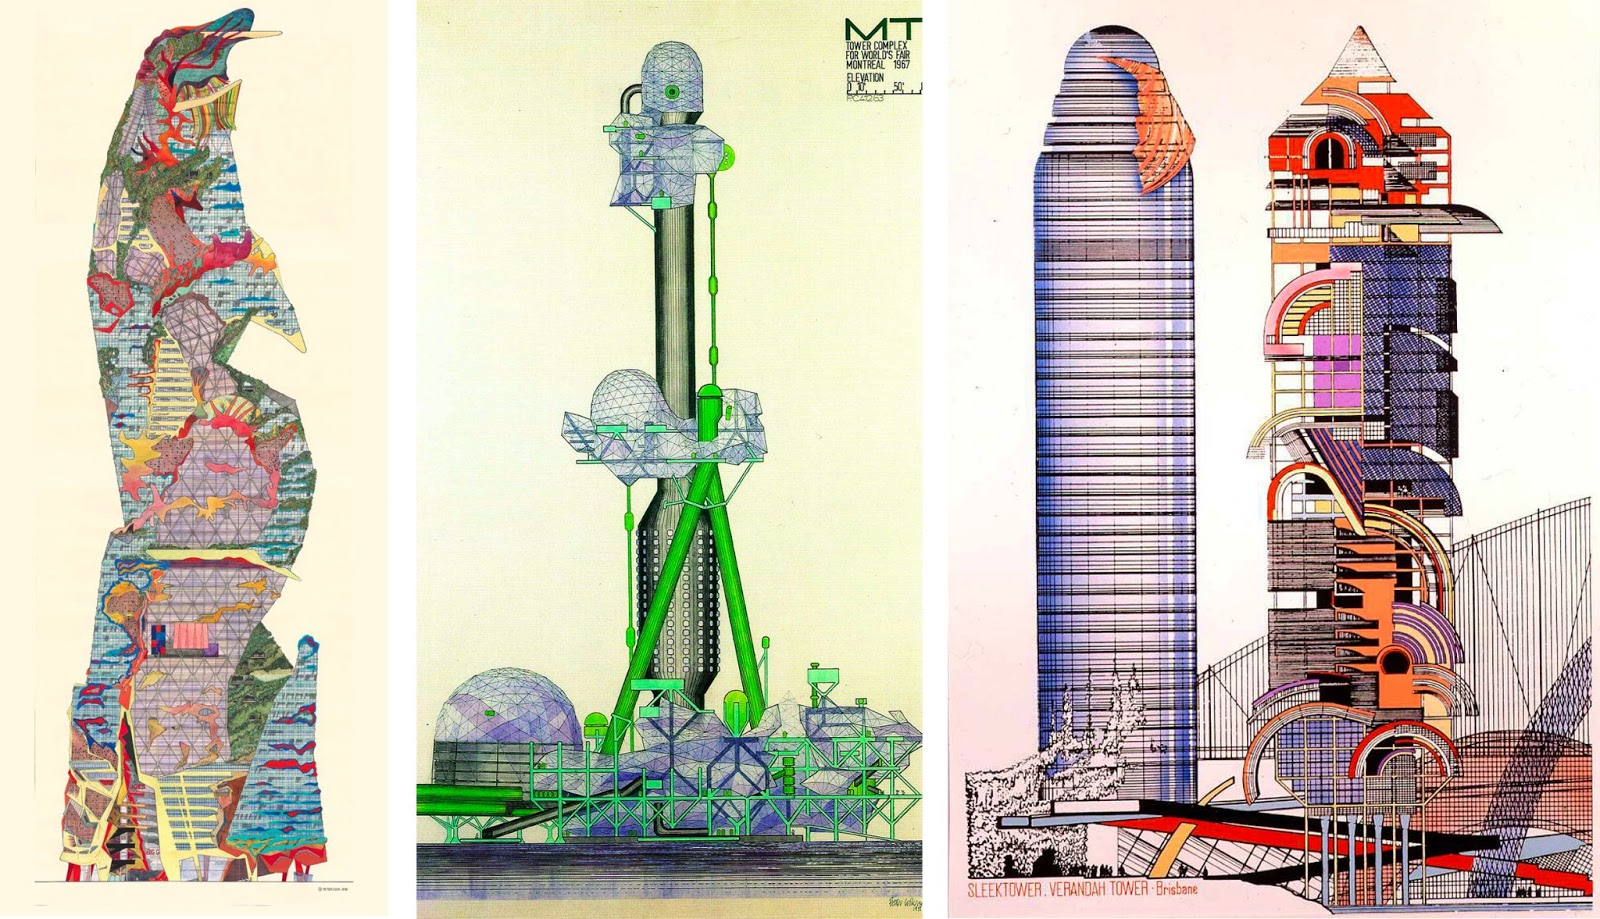 Jessica Angel Notes The Archigram Archival Project